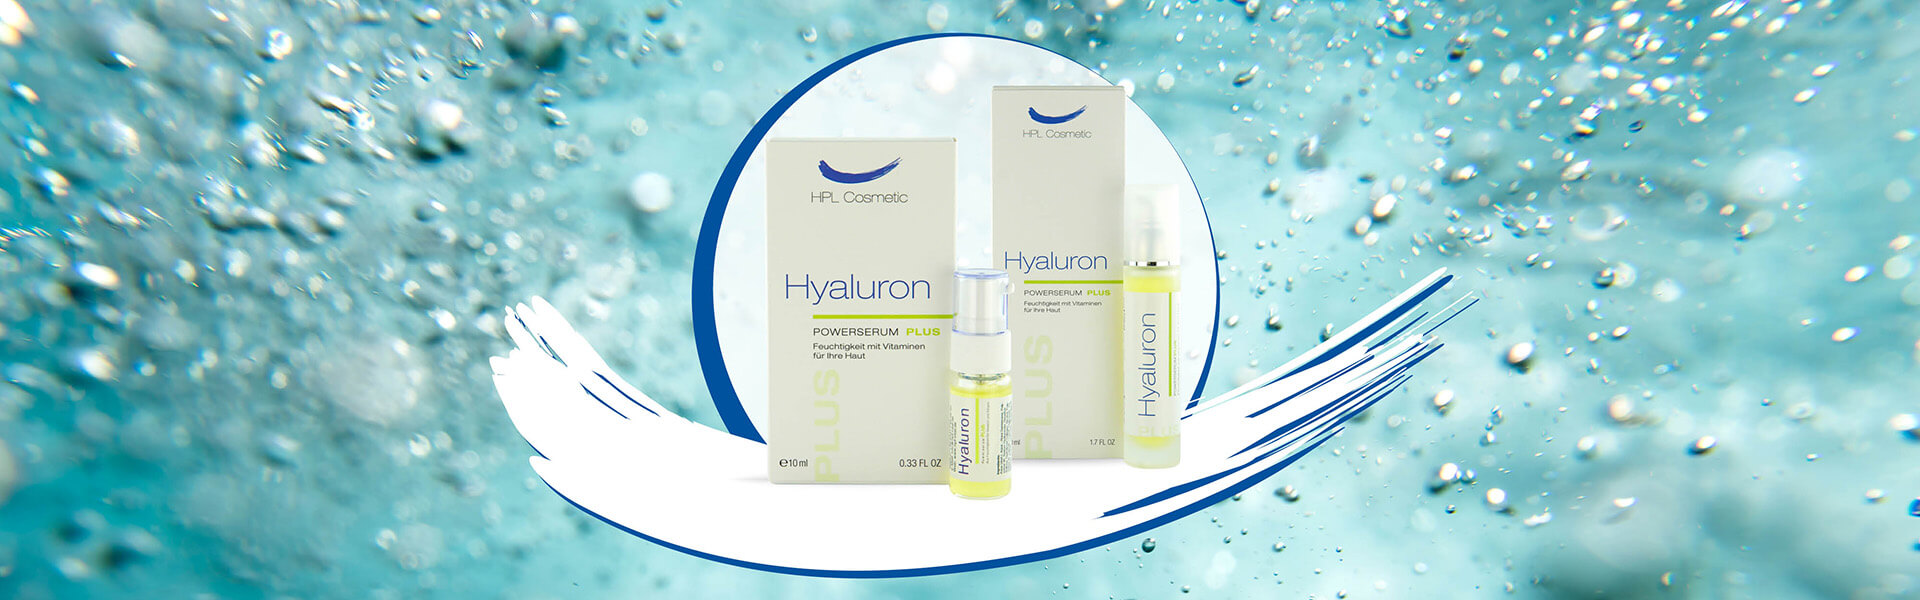 HPL Hyaluron POWERSERUM.jpg